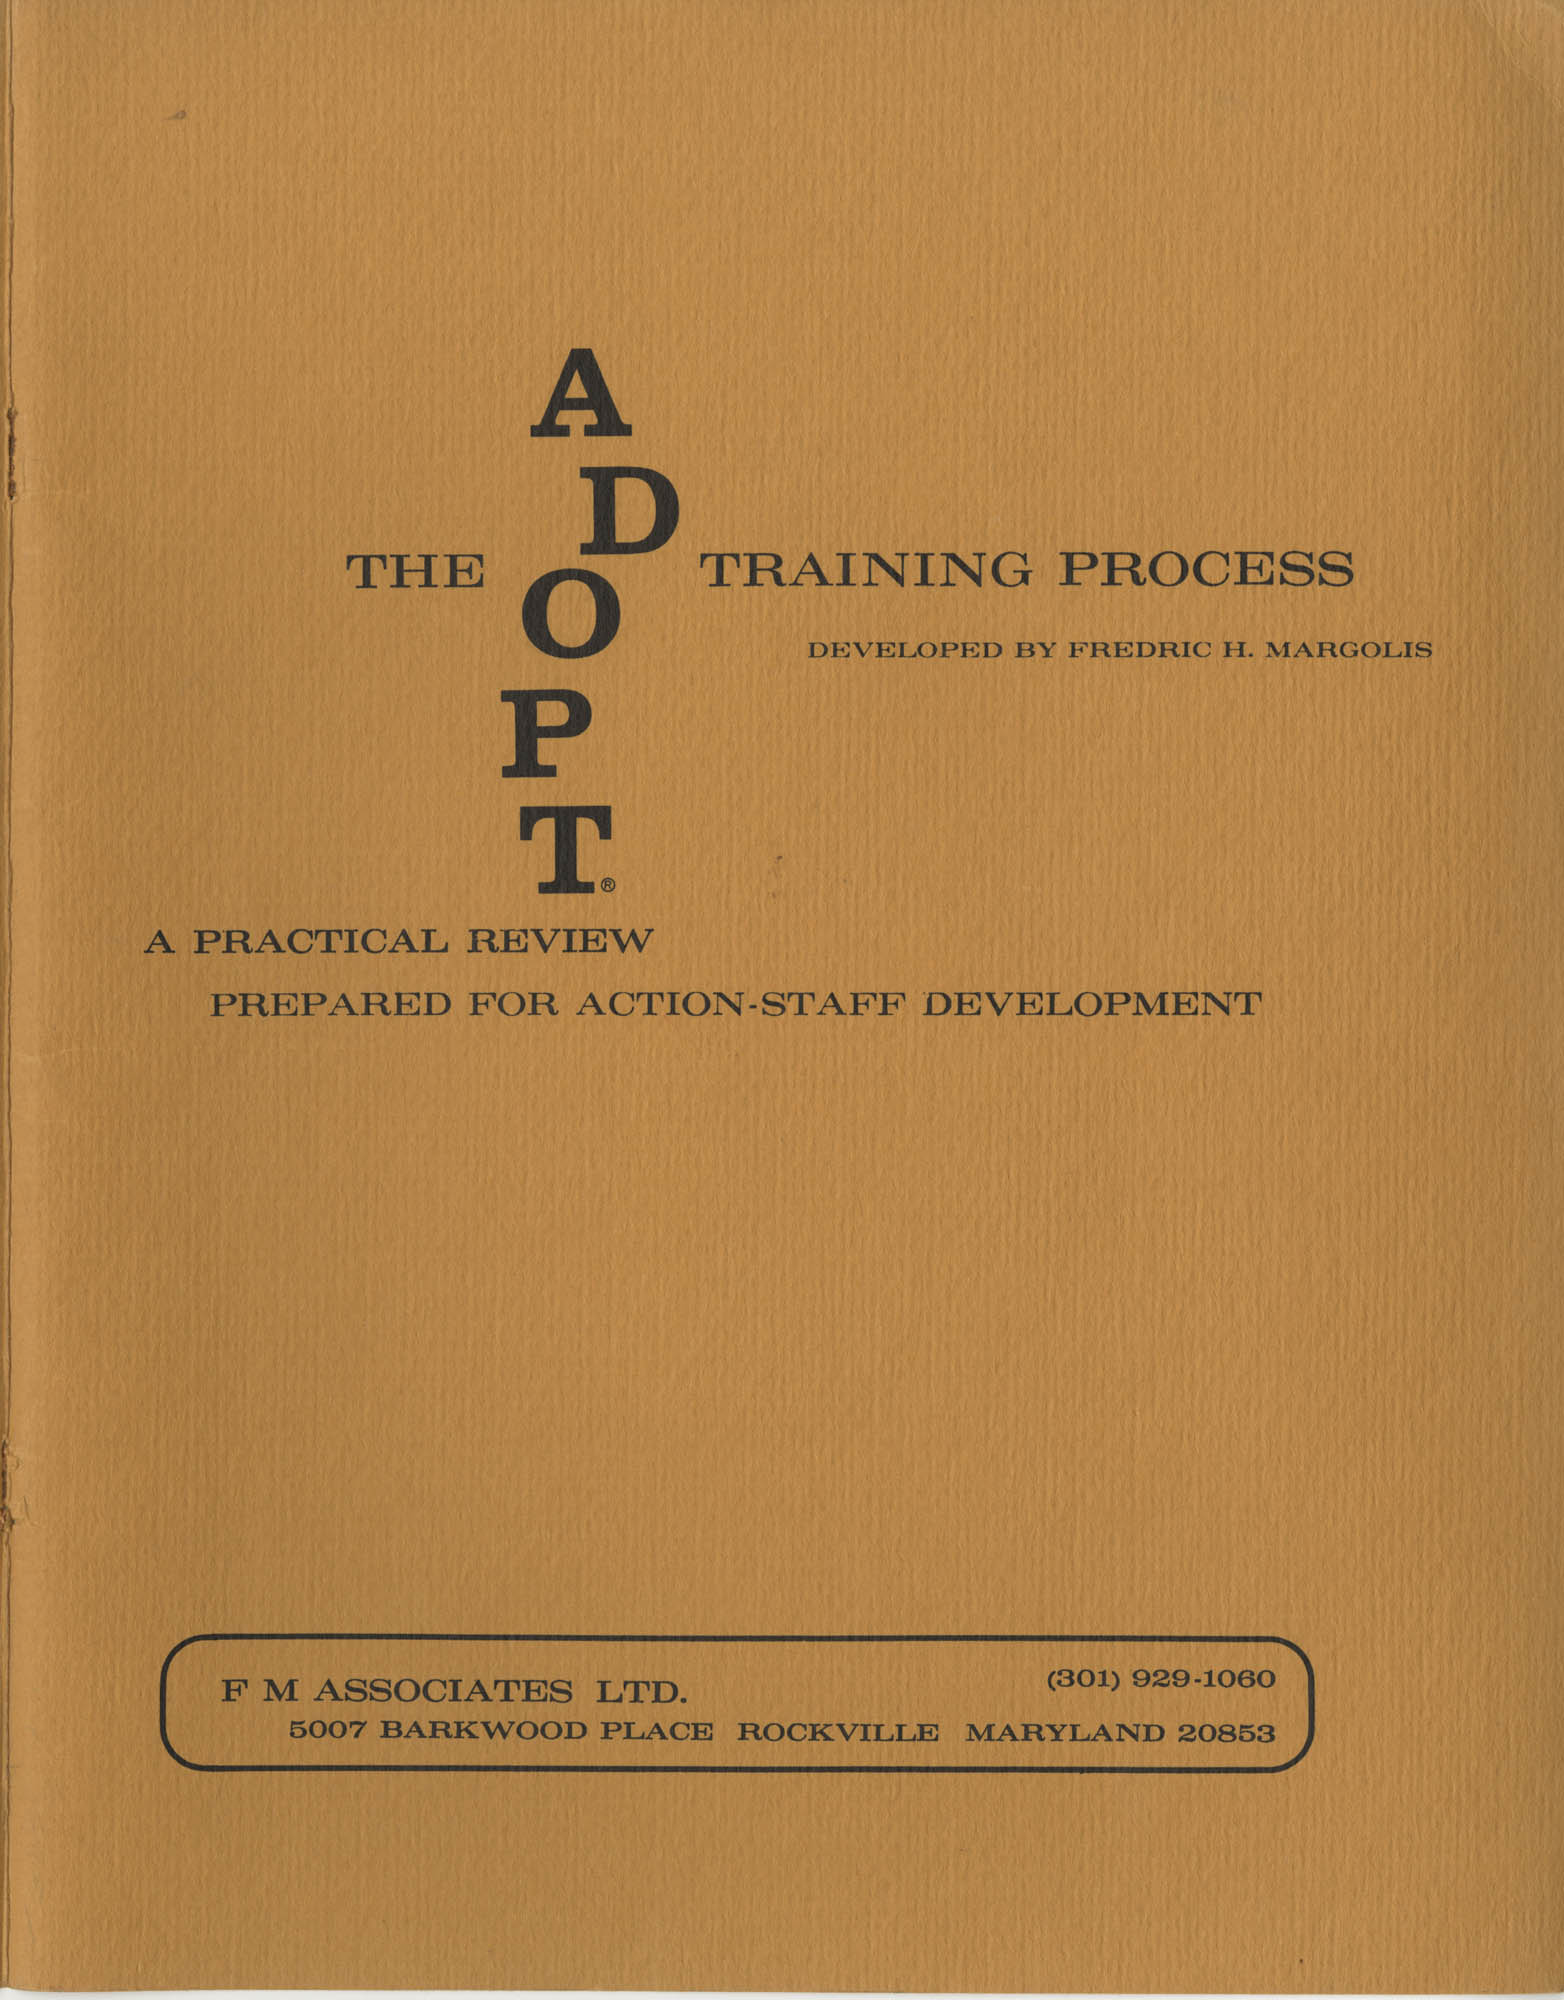 ADOPT Training Process, Front Cover Exterior